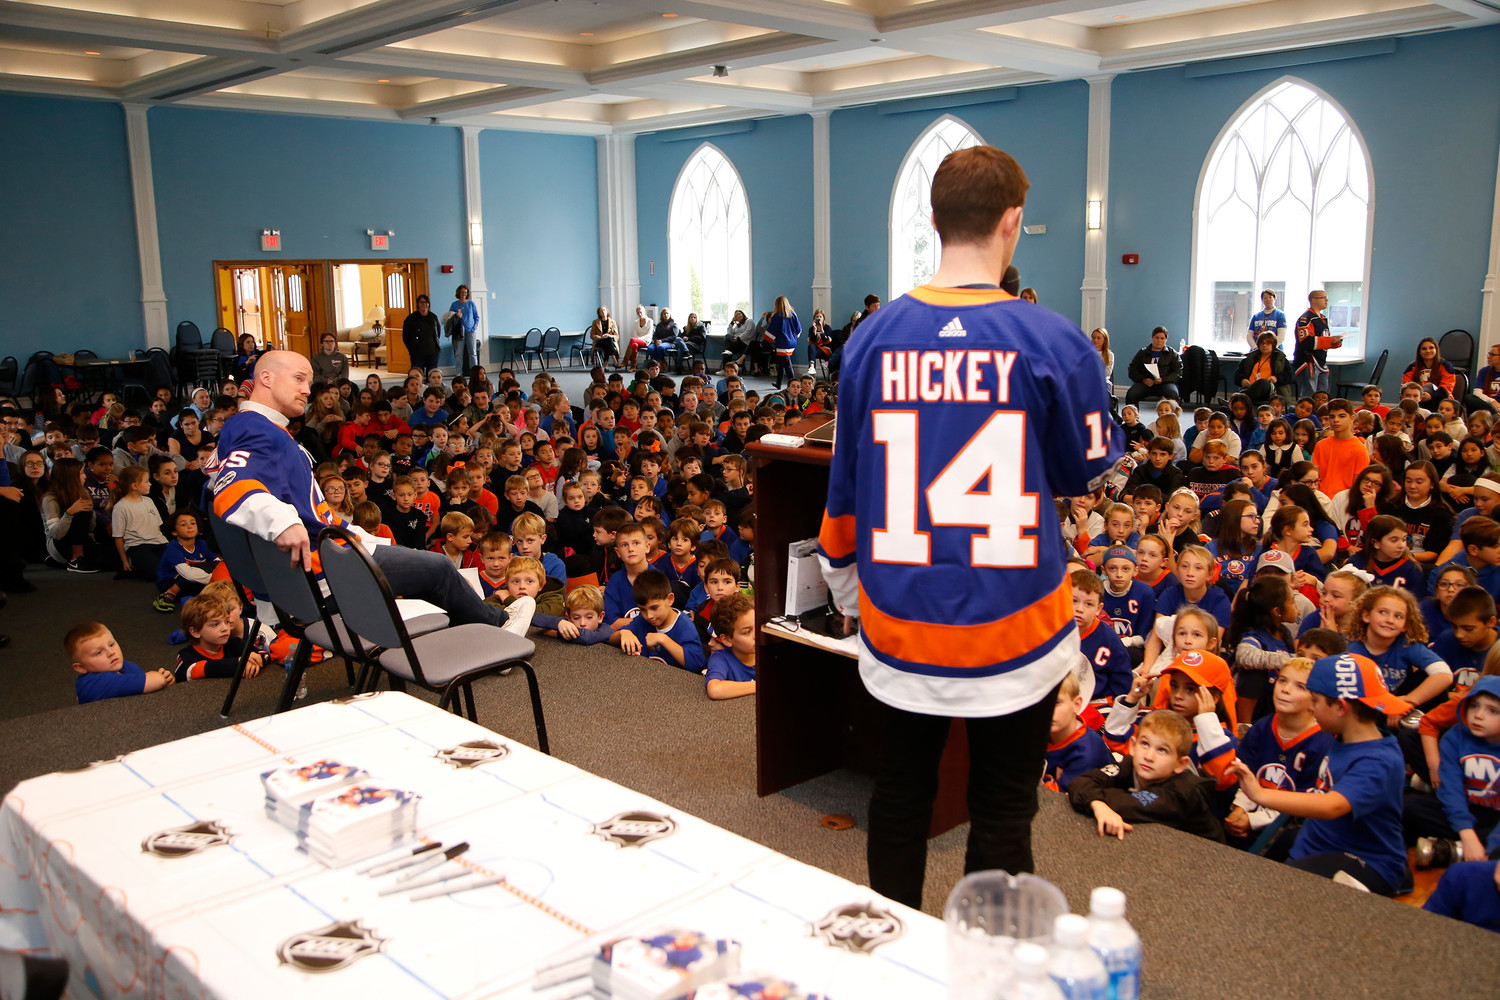 Hickey and Jason Chimera, left, fielded questions from the students.